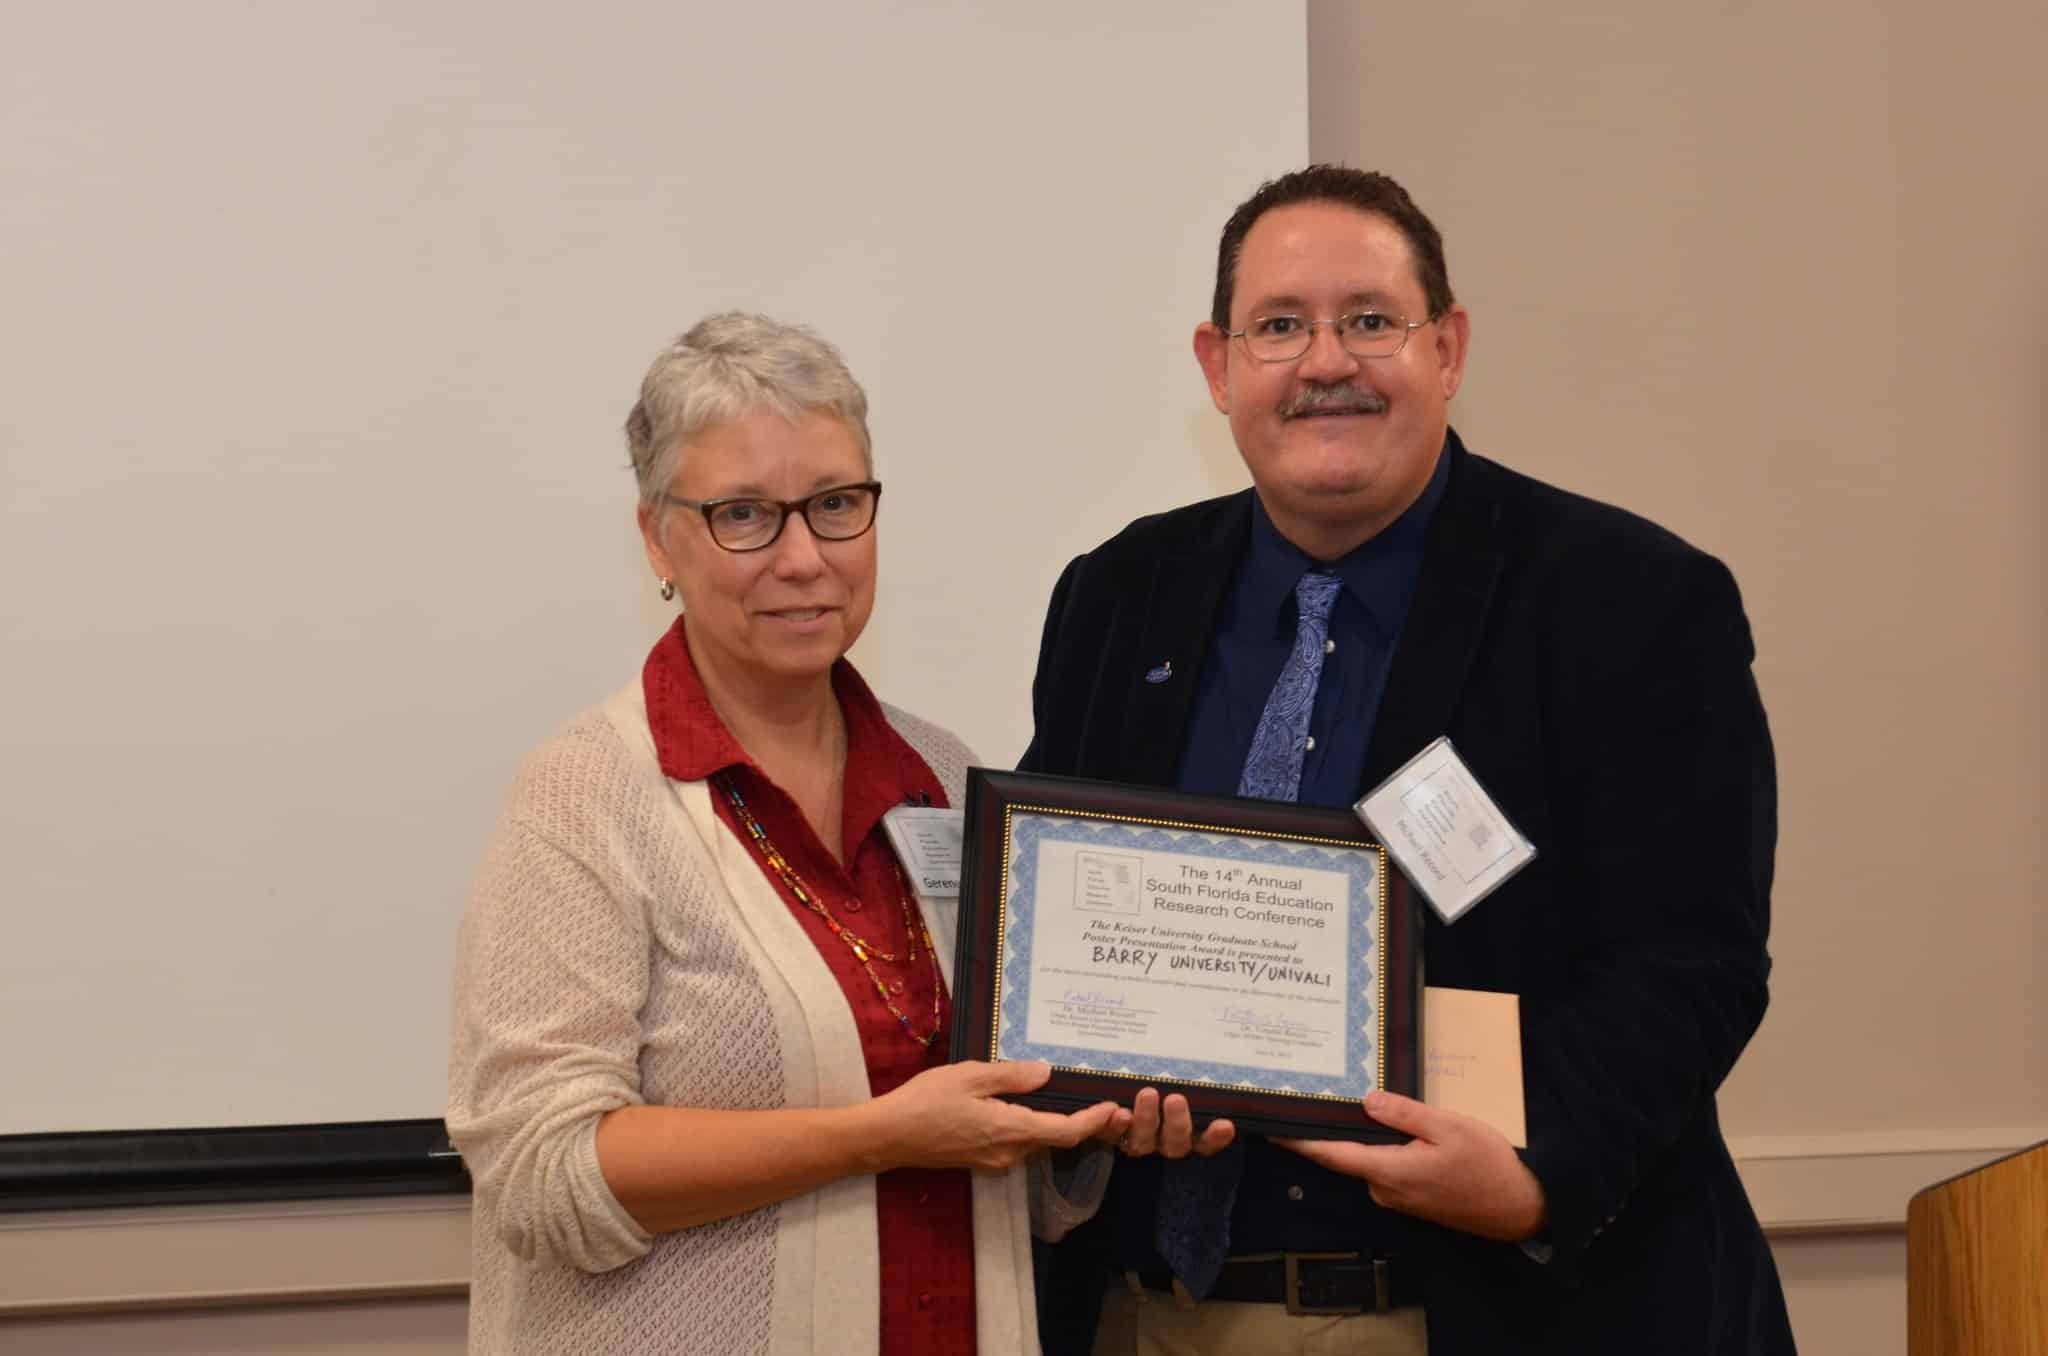 Keiser University Graduate School Award Given at Regional Research Conference